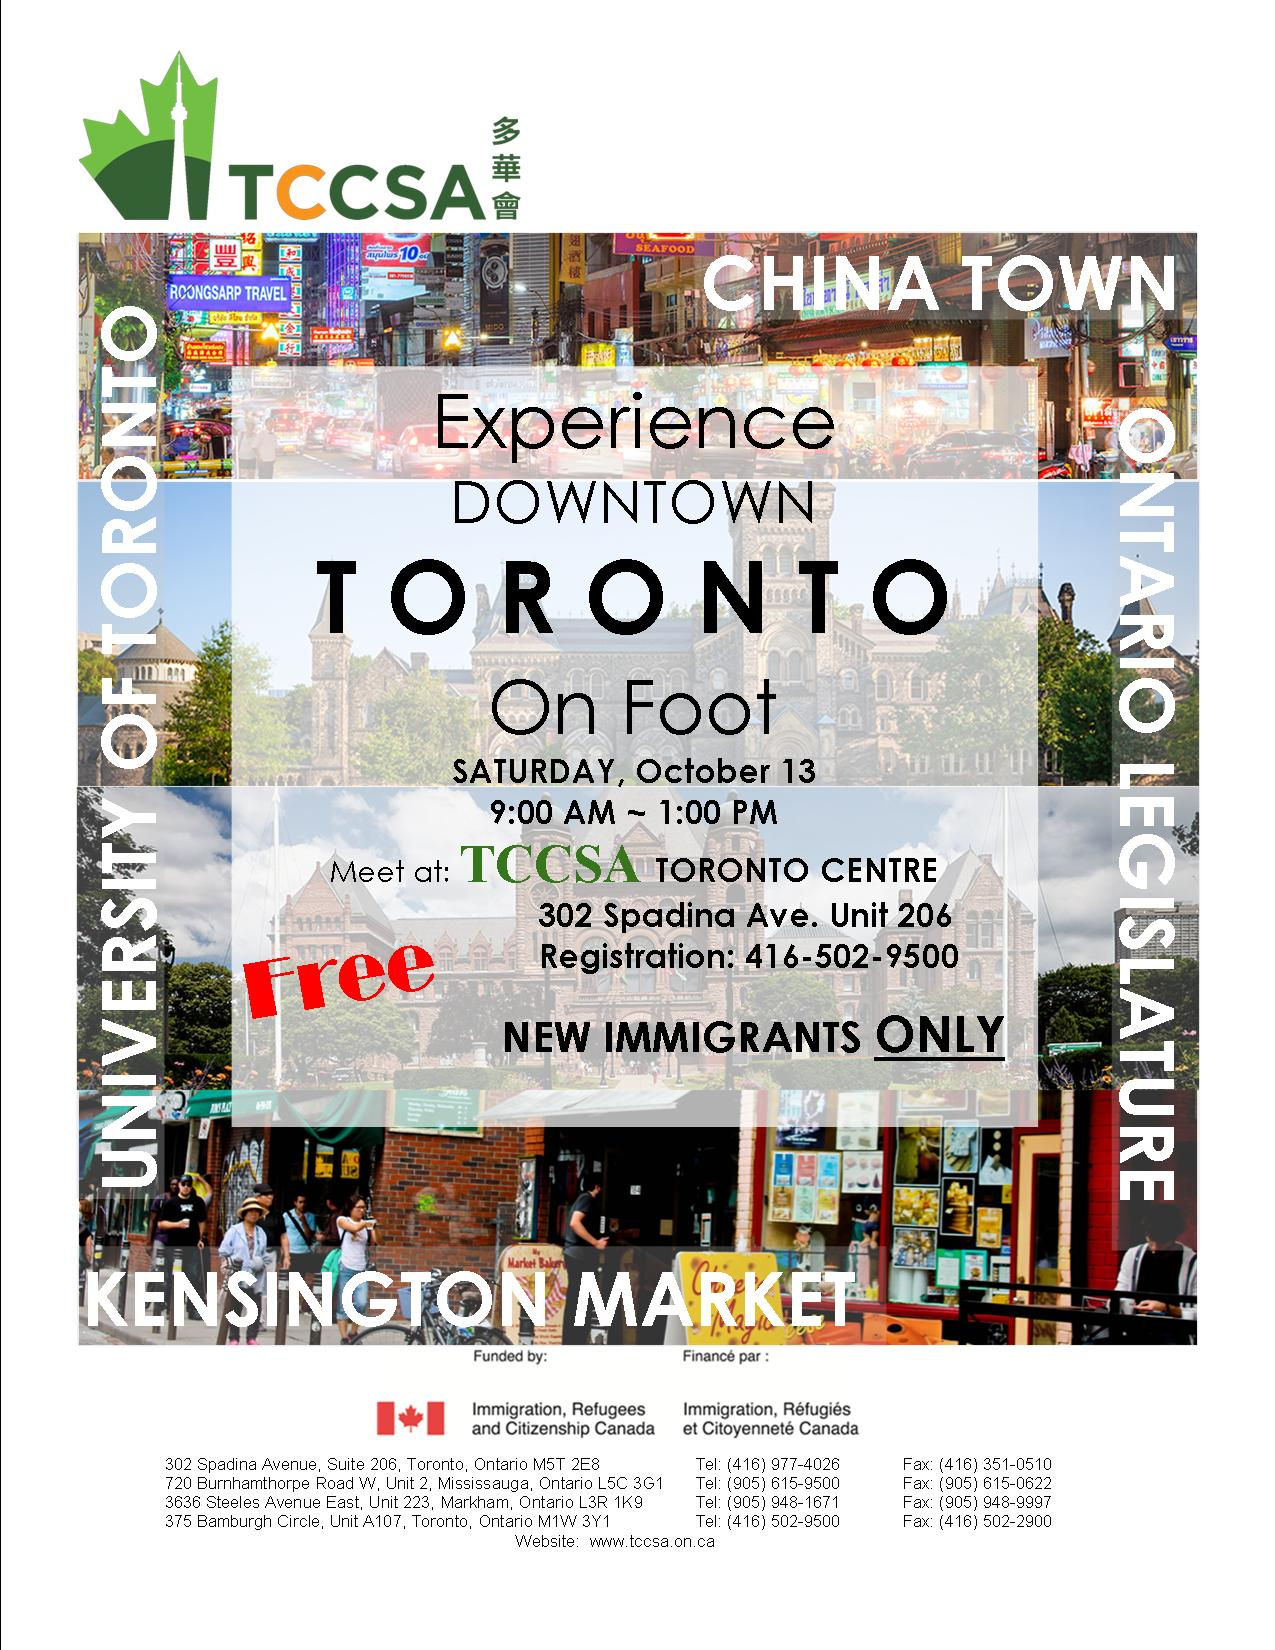 Picture of a flyer with the details of the Downtown Toronto Tour